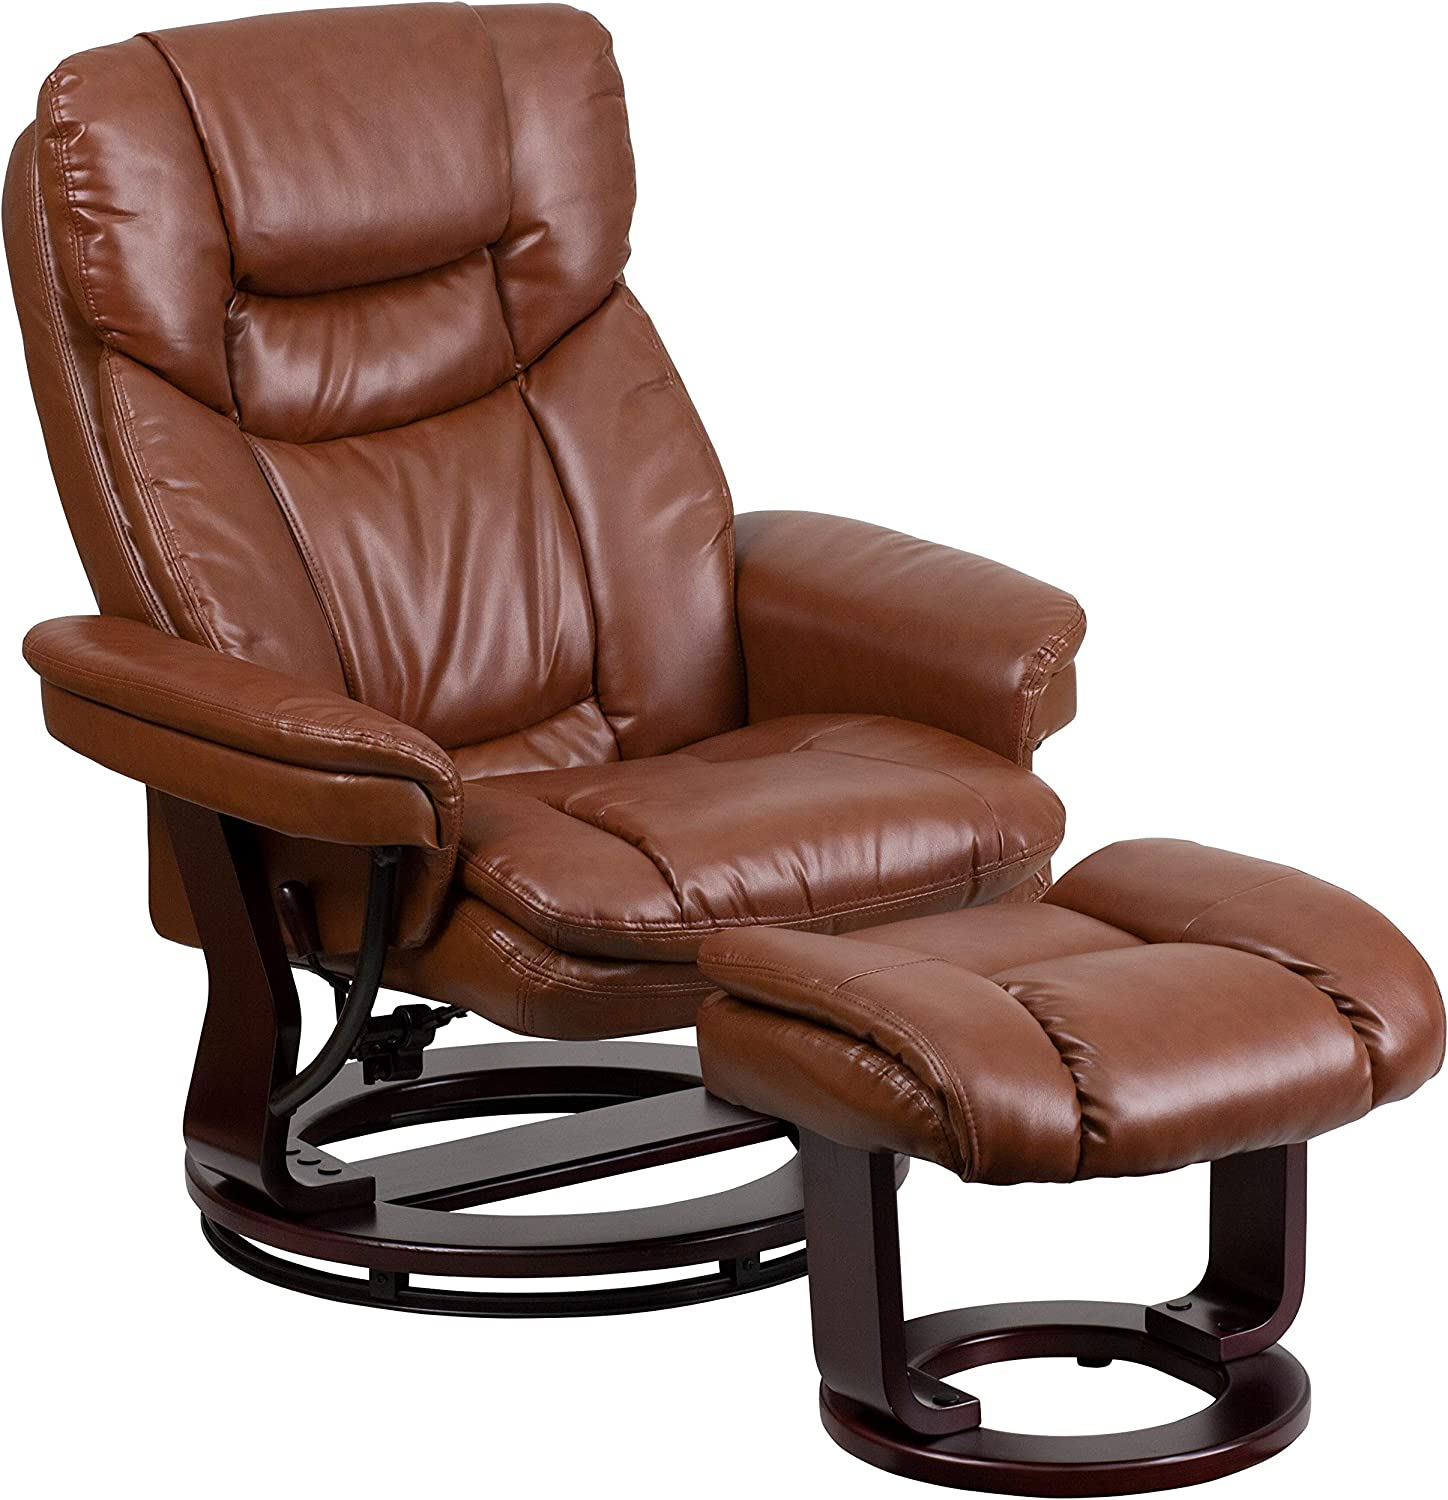 My Friendly Office MFO Contemporary Multi-Position Recliner Ottoman, Swivel Mahogany Wood Base in Brown Leather